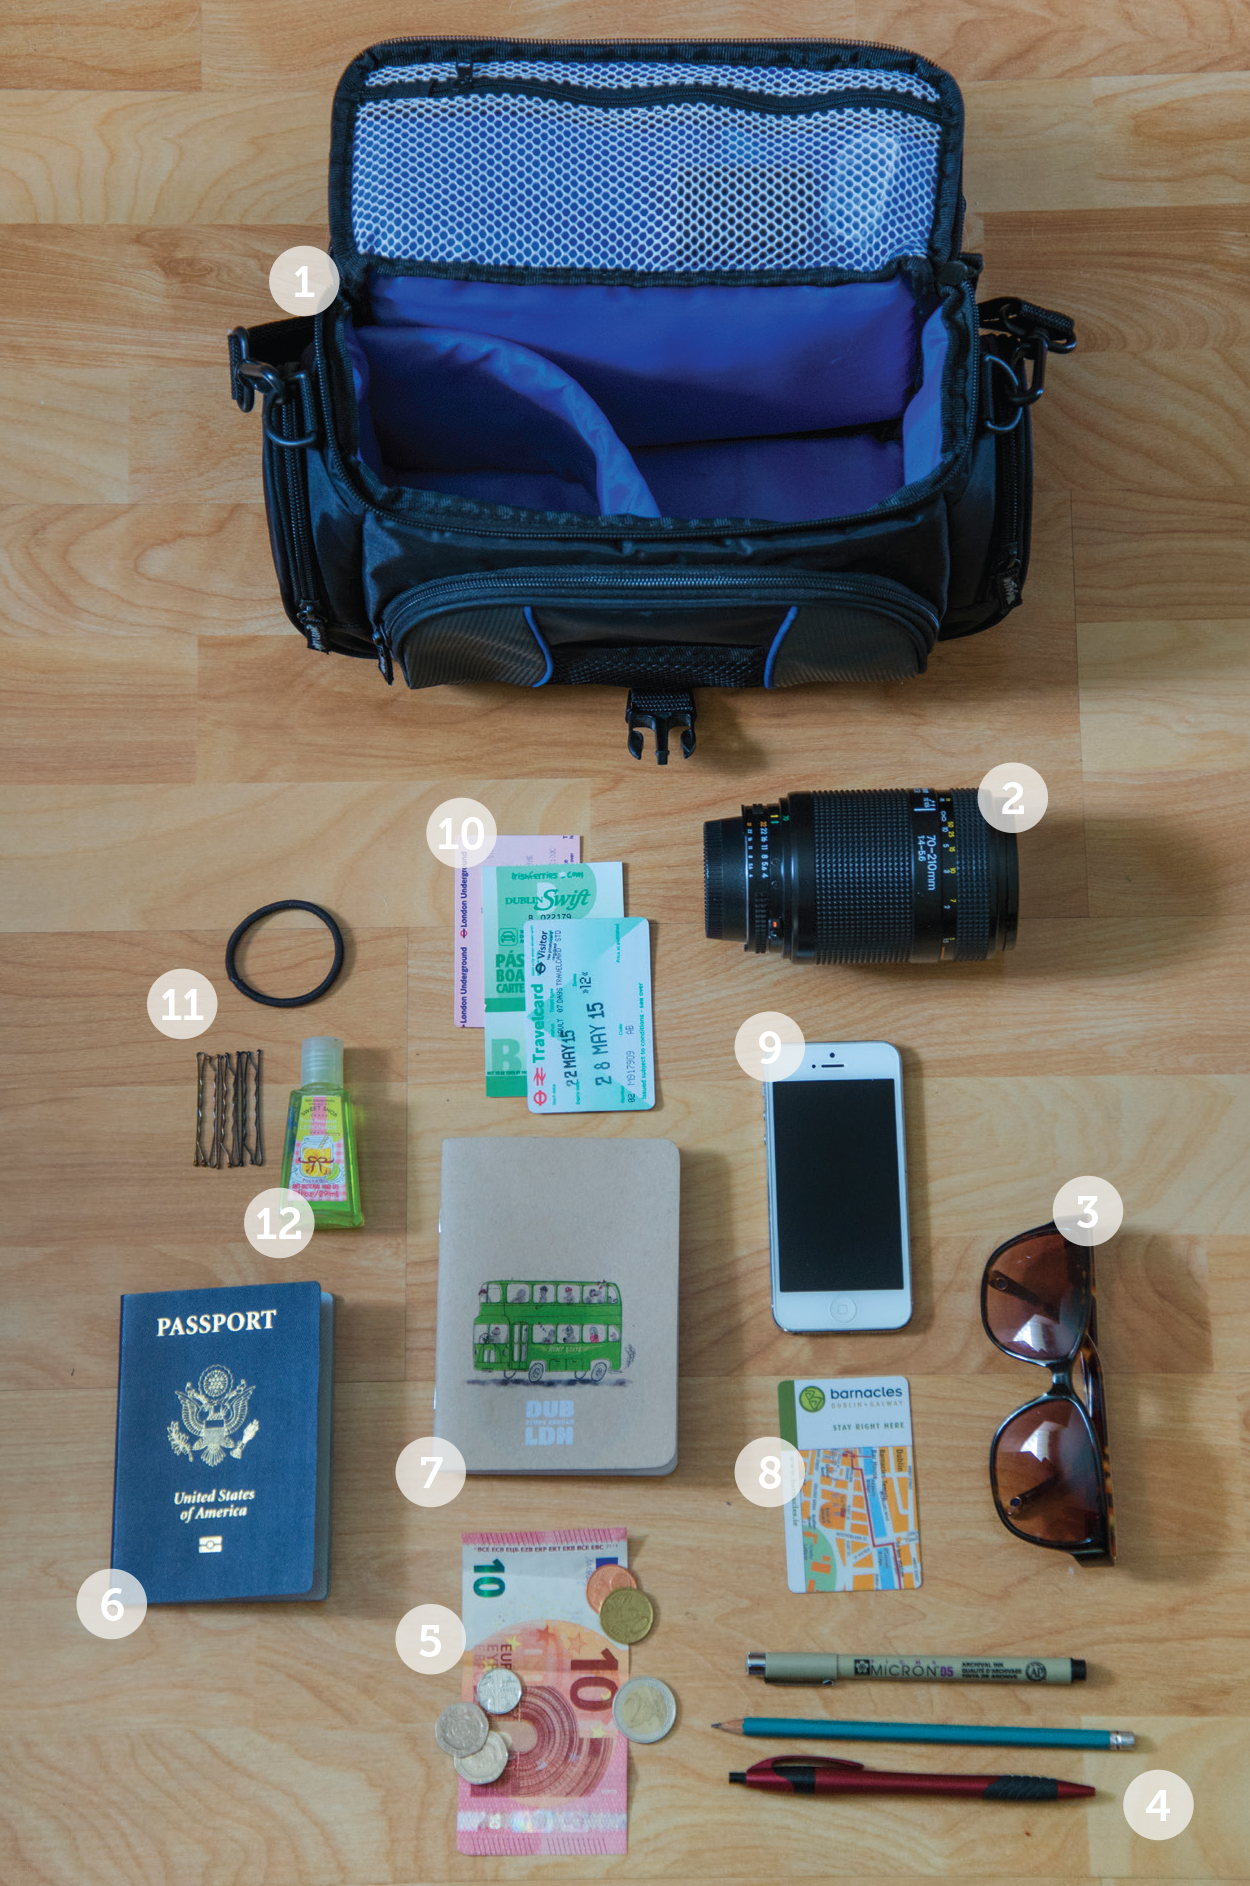 Kara Wellman '16 shares what she carried on her study abroad trip